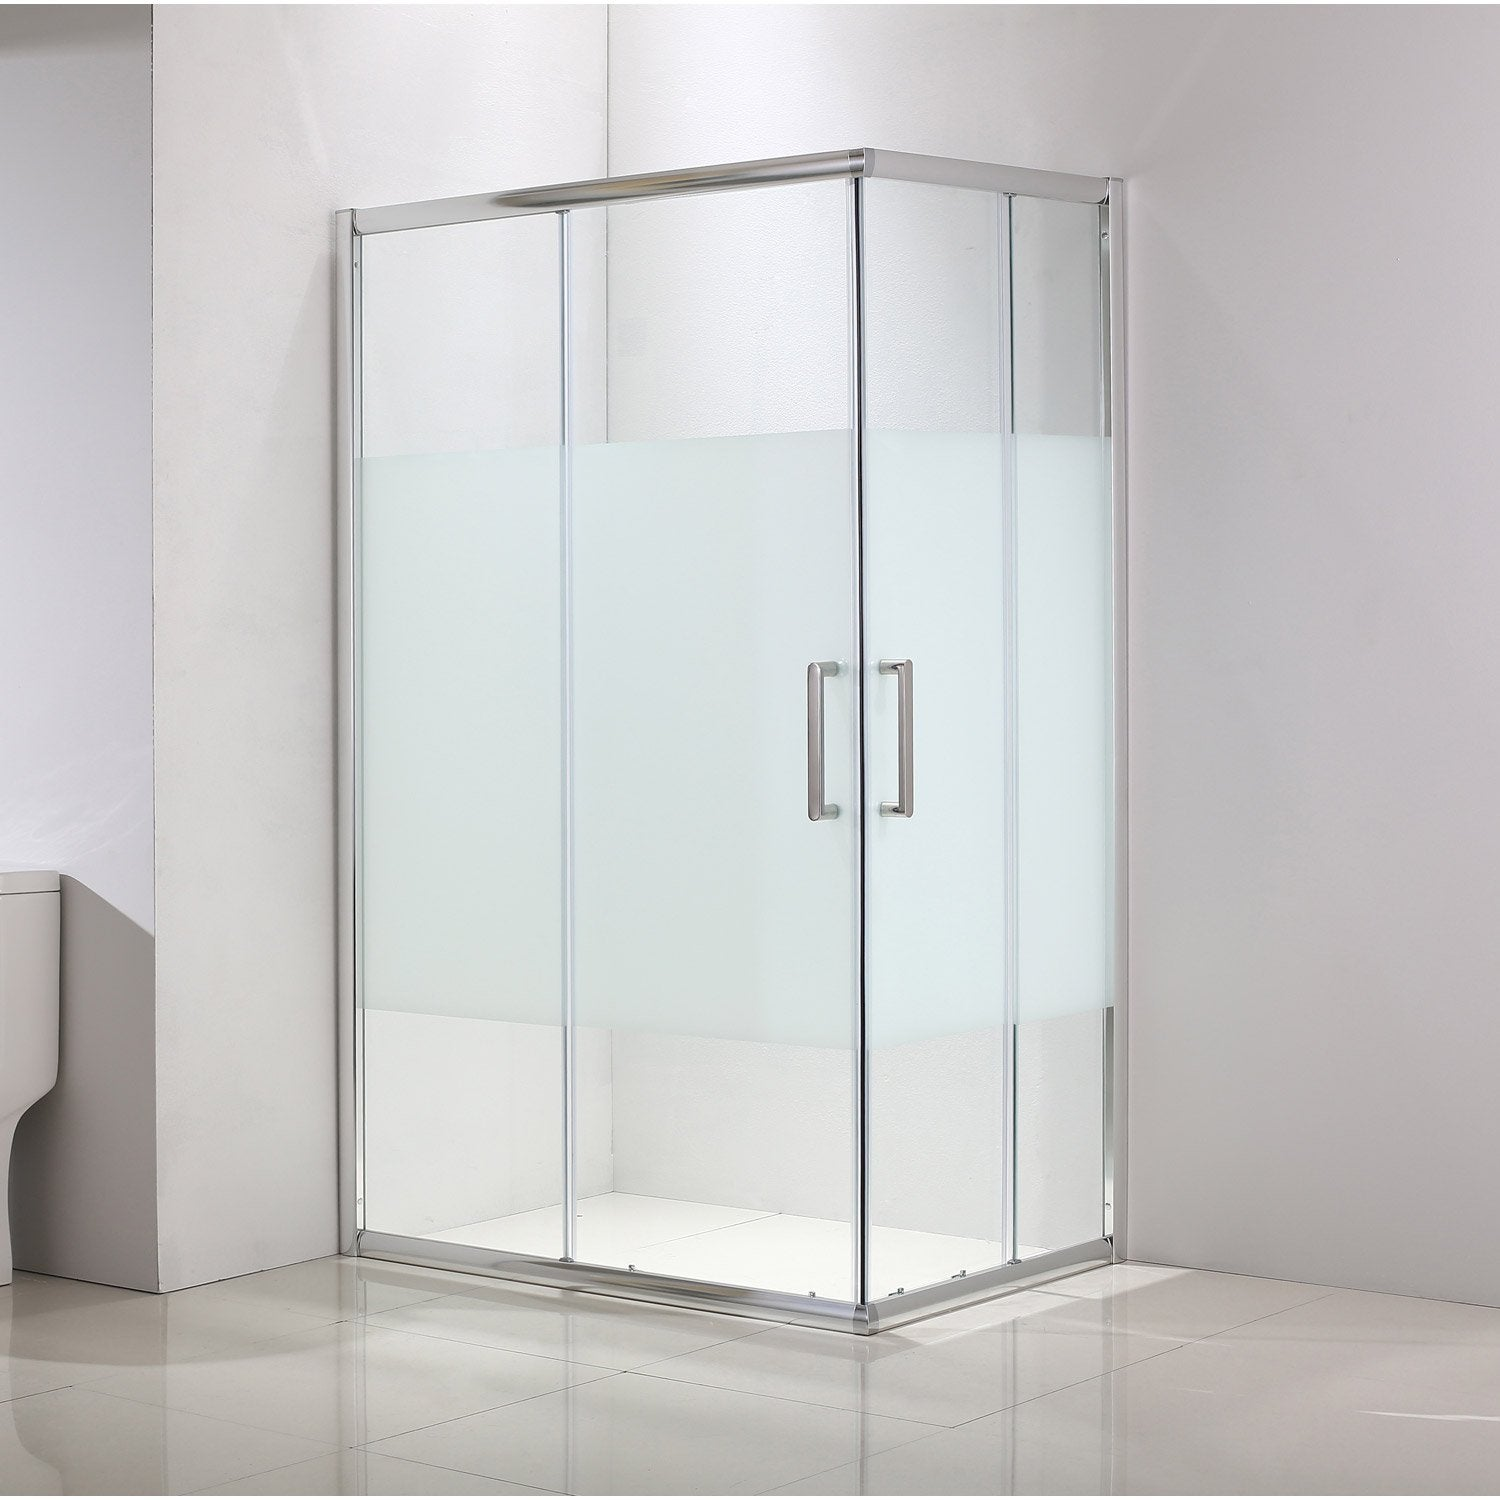 Porte De Douche Coulissante Angle Rectangle 120 X 80 Cm S Rigraphi Quad Leroy Merlin